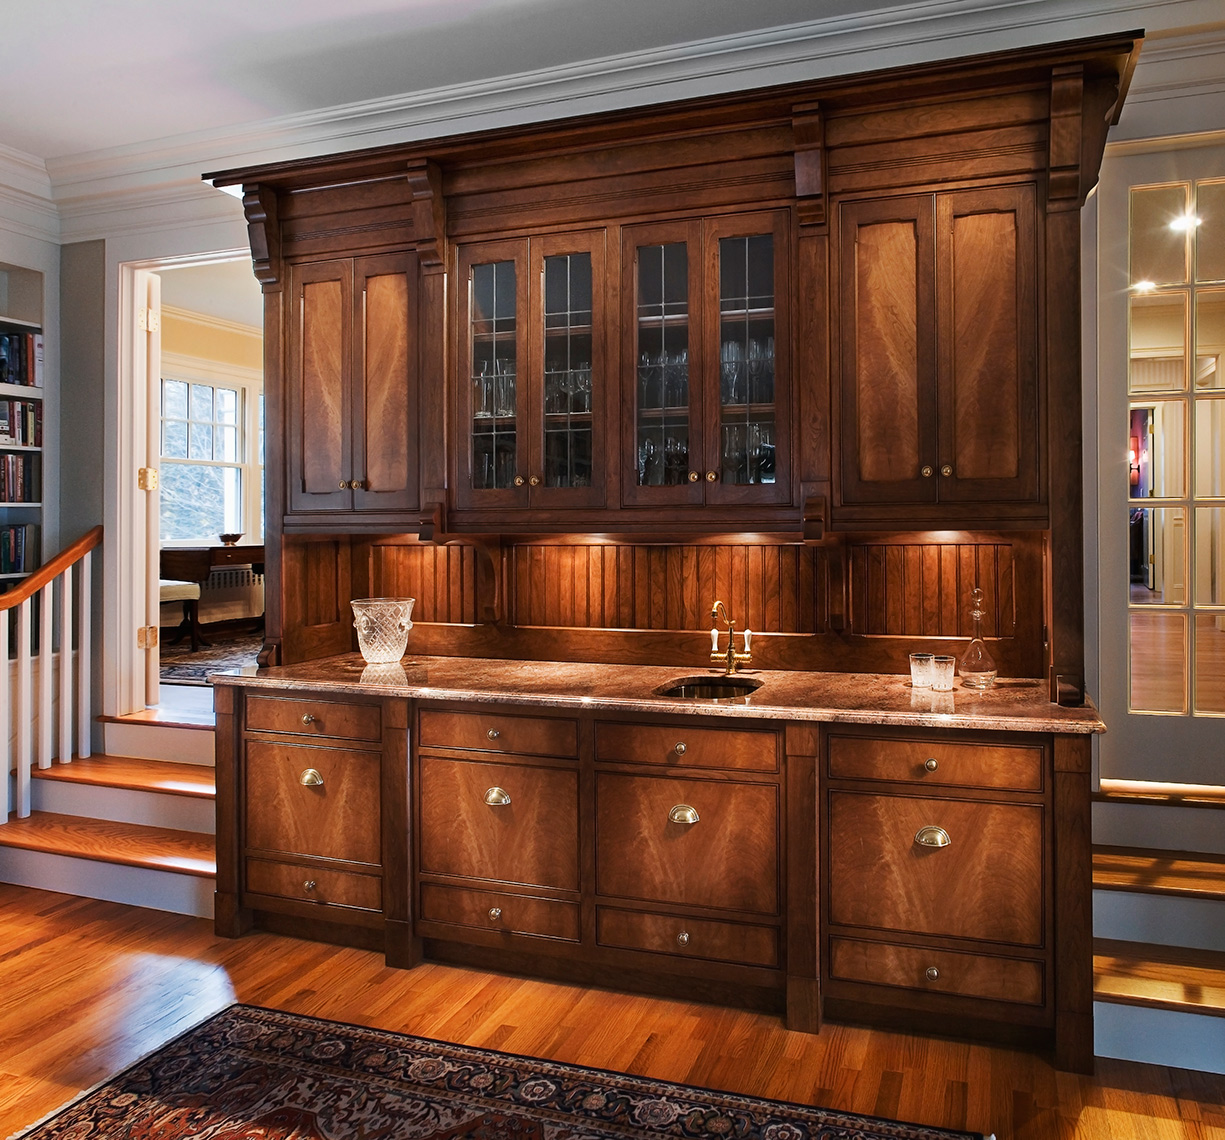 custom kitchen cabinets Hunterdon County, NJ-Traditional Residential Bar in Figured Cherry